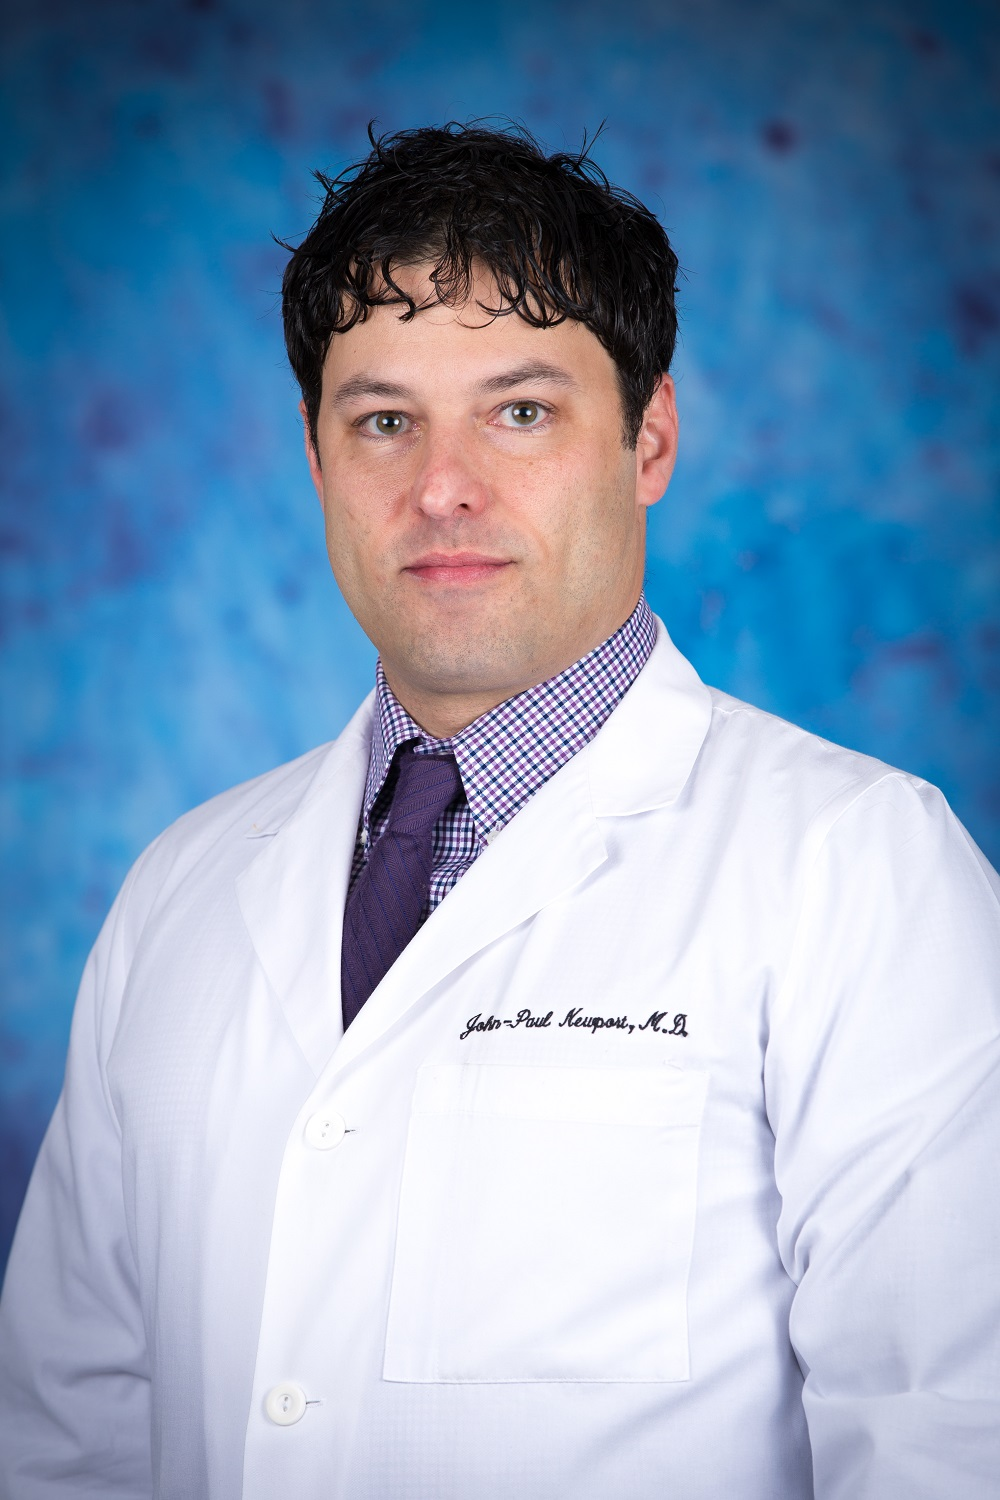 John-Paul Newport, MD of Urology Specialists of East Tennessee